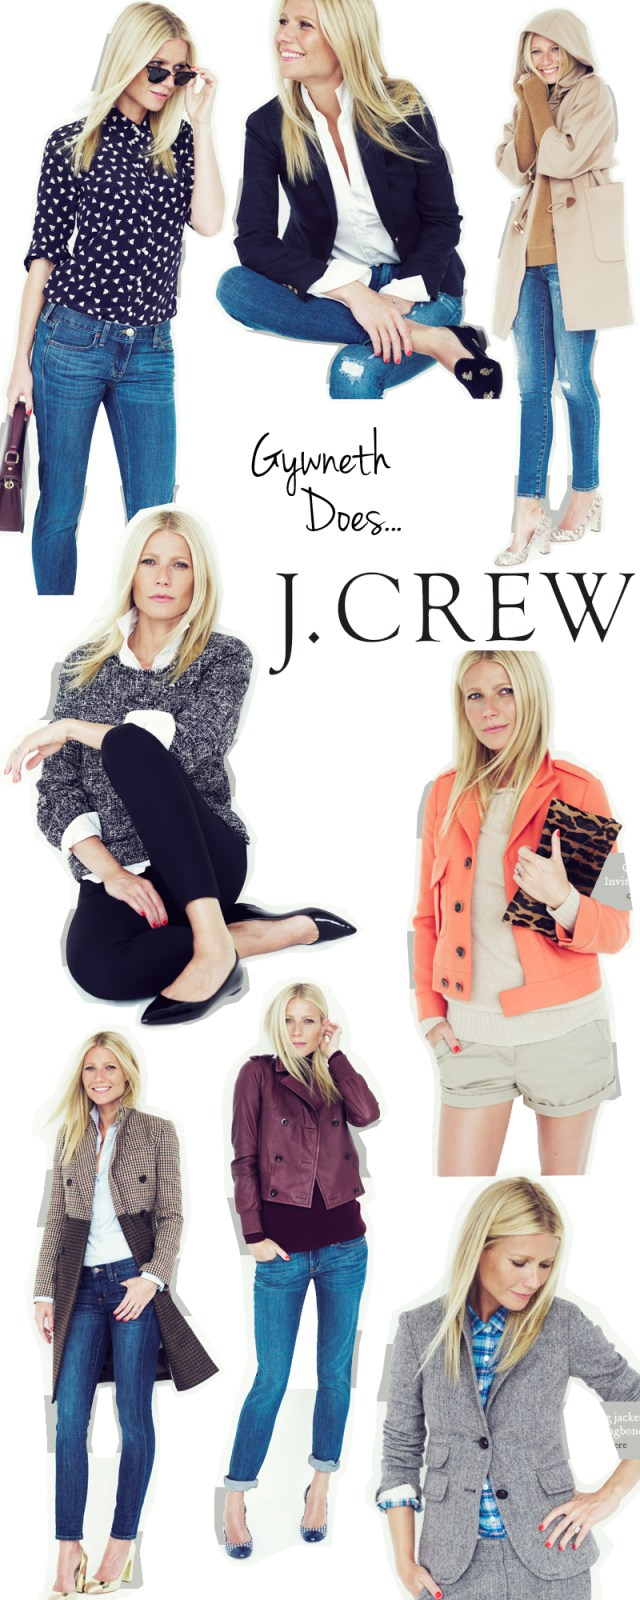 Gwyneth Paltrow for J.Crew